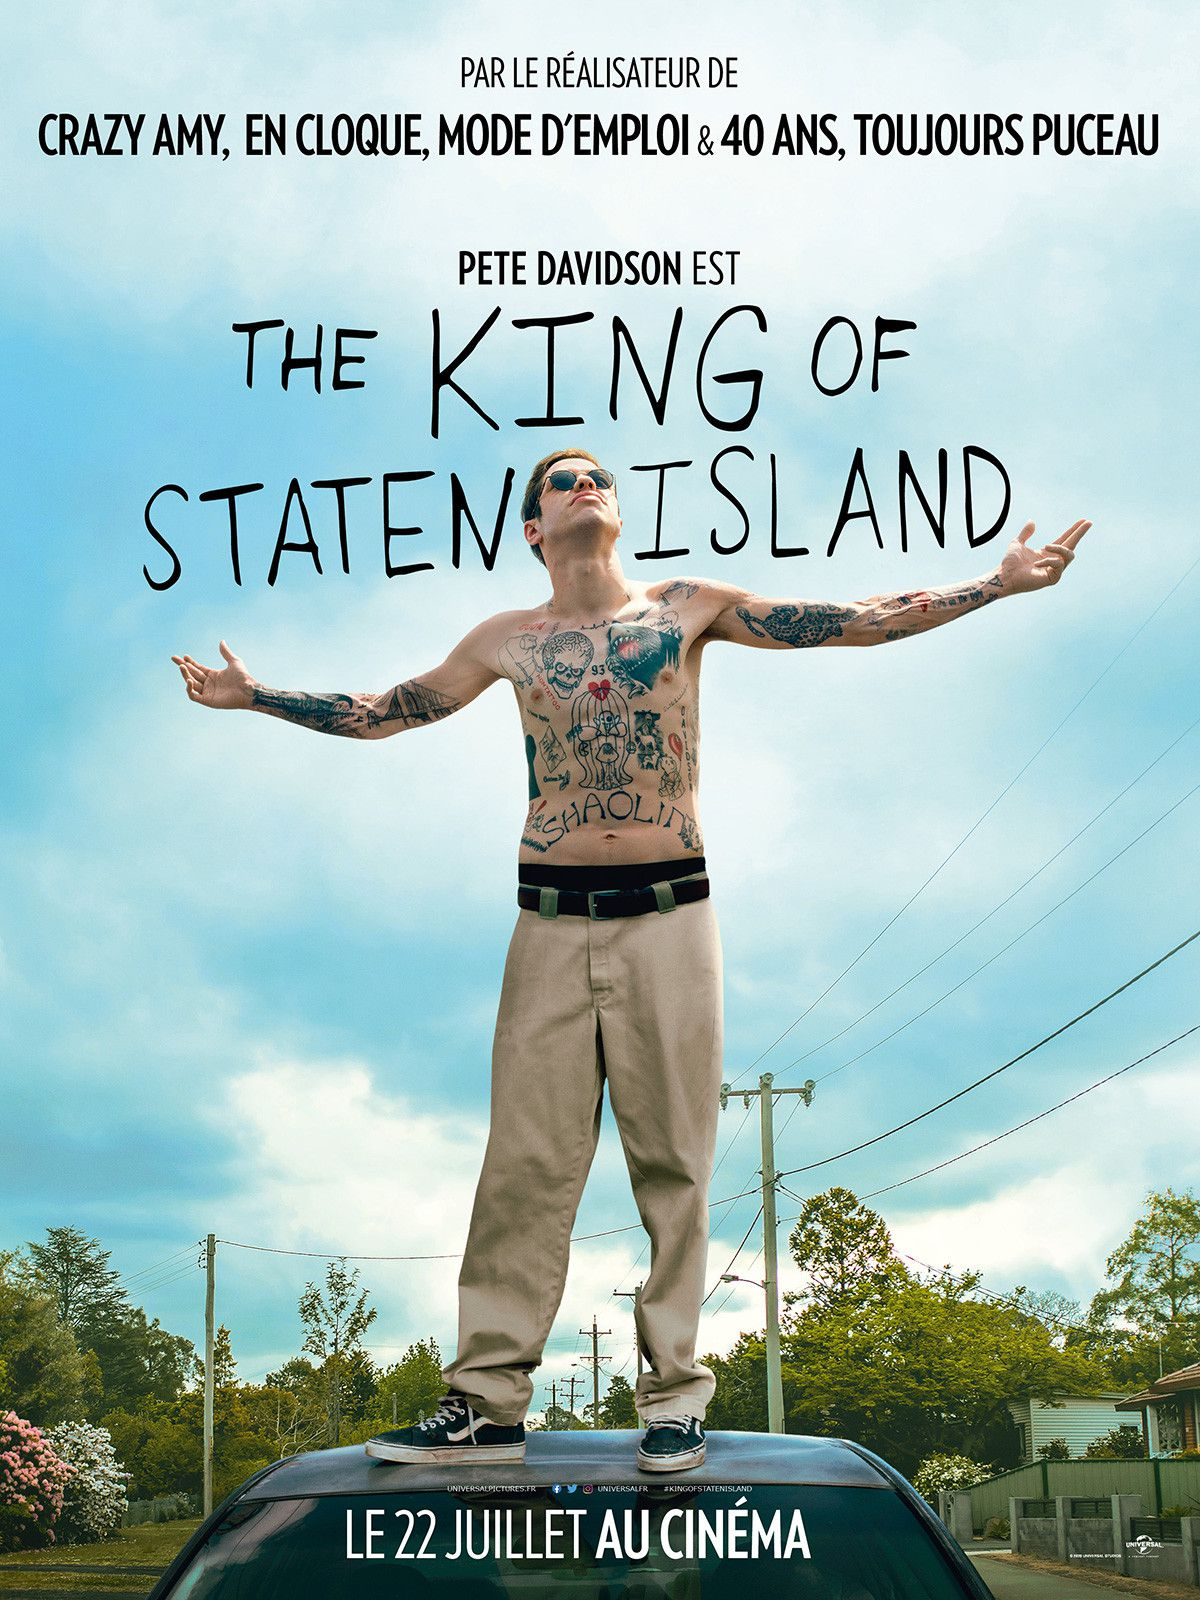 The King of Staten Island - Film (2020) streaming VF gratuit complet